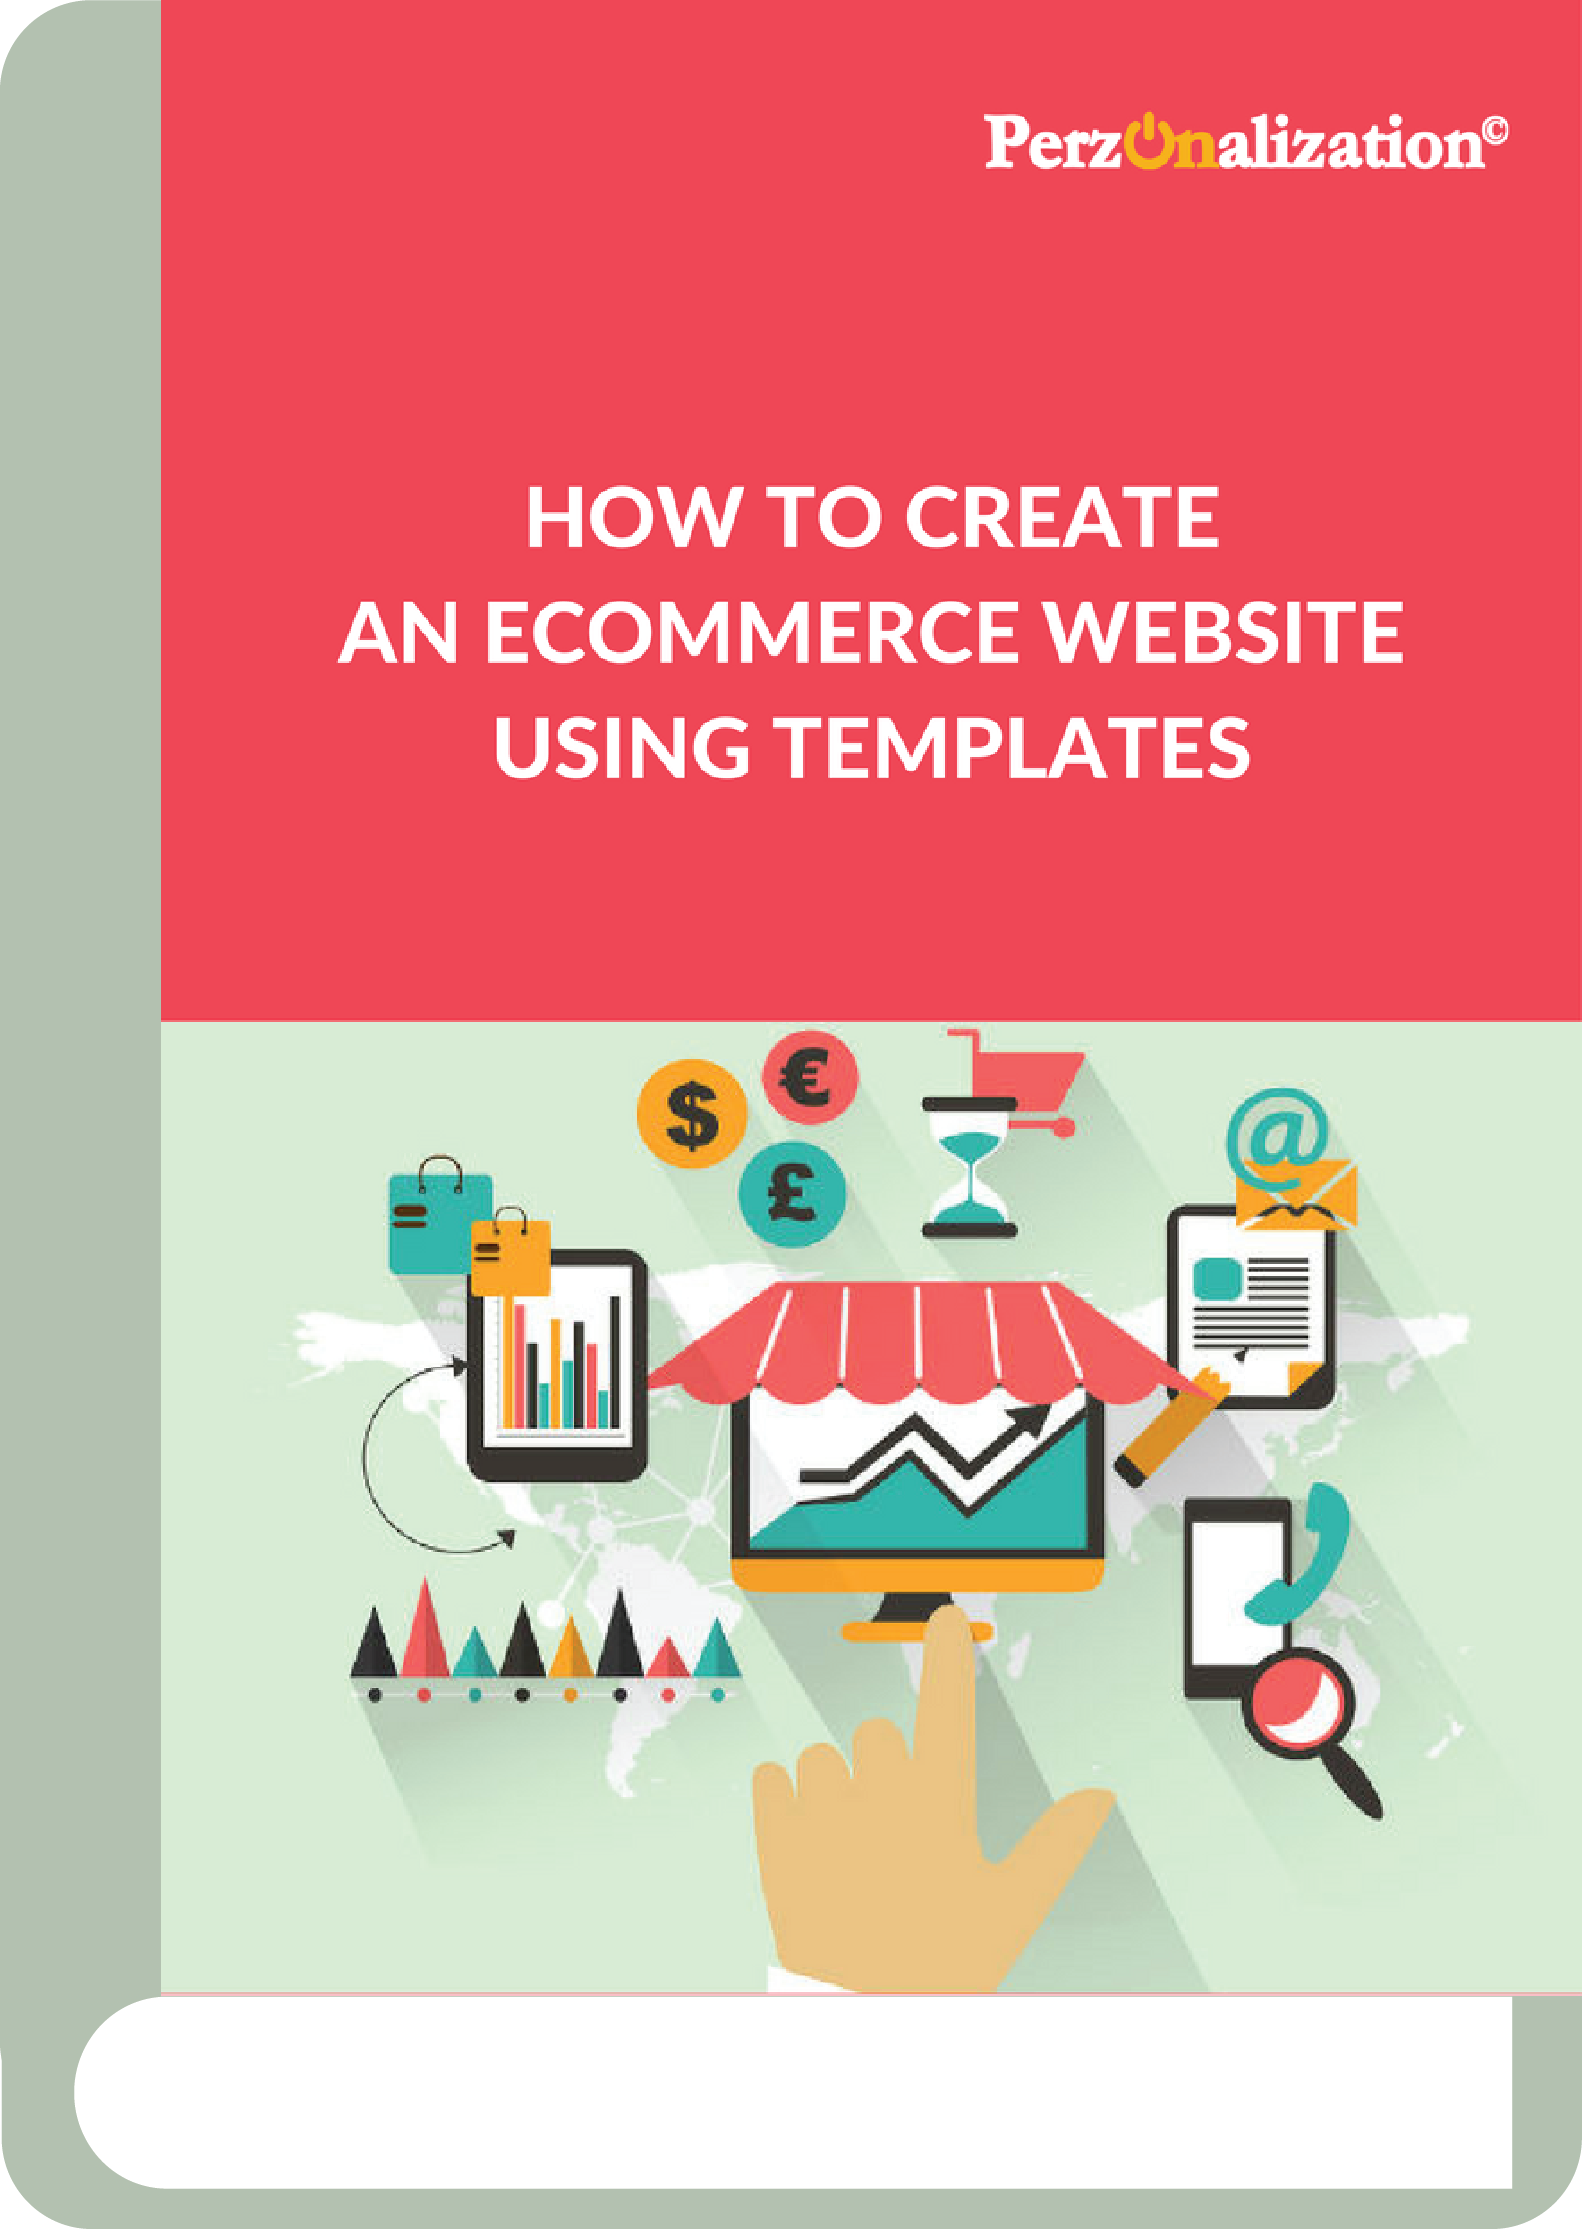 To create a clean, simple and eye-grabbing eCommerce website, you need best-in-class eCommerce themes. Find out more in this free eBook on OpenCart and PrestaShop themes!